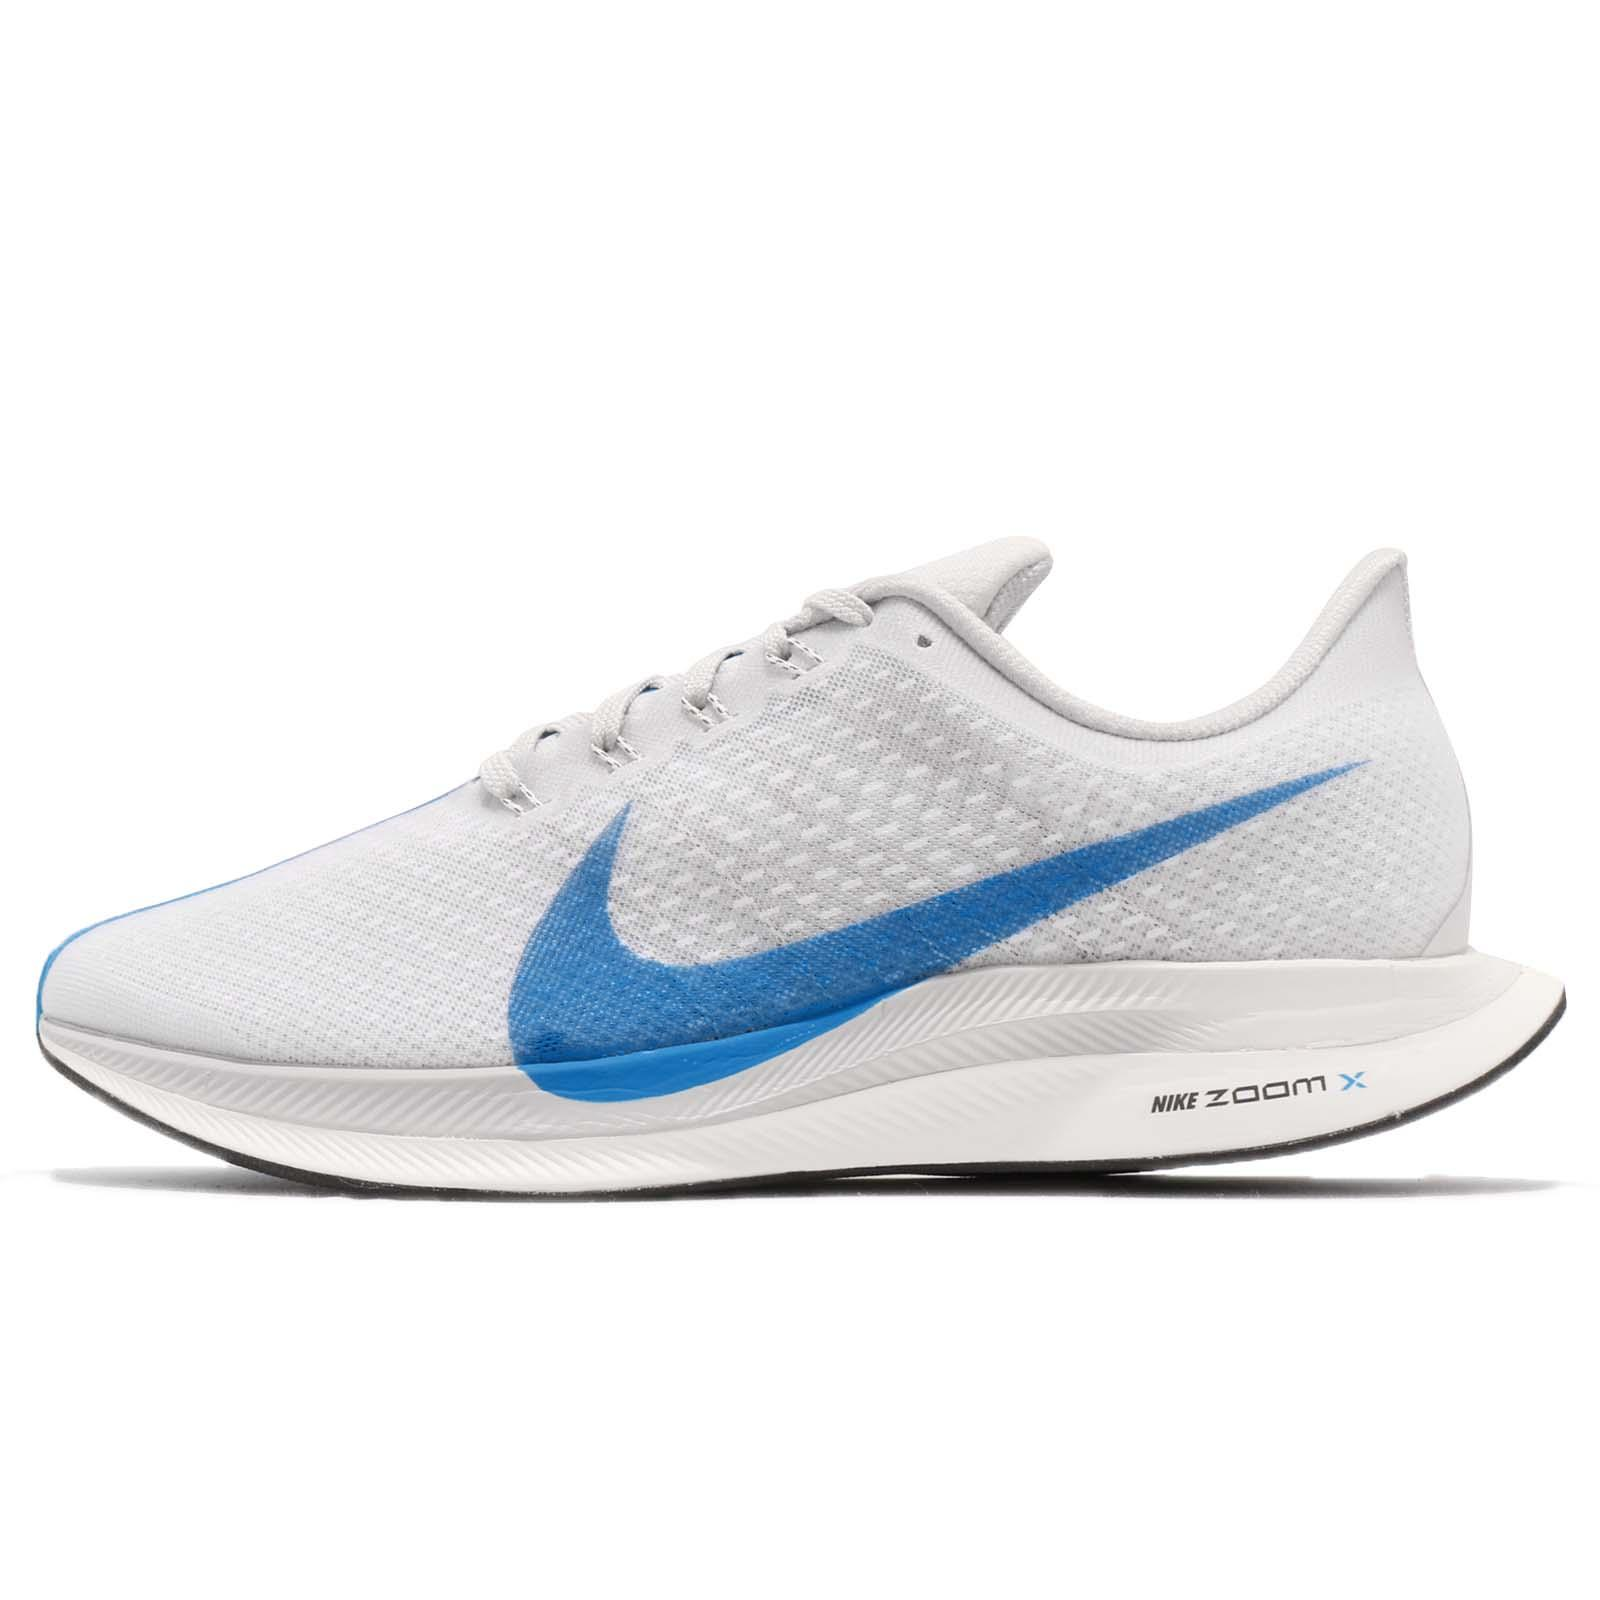 5c0a1531d77 Nike Zoom Pegasus 35 Turbo White Blue Hero Grey Mens Running Shoes  AJ4114-140